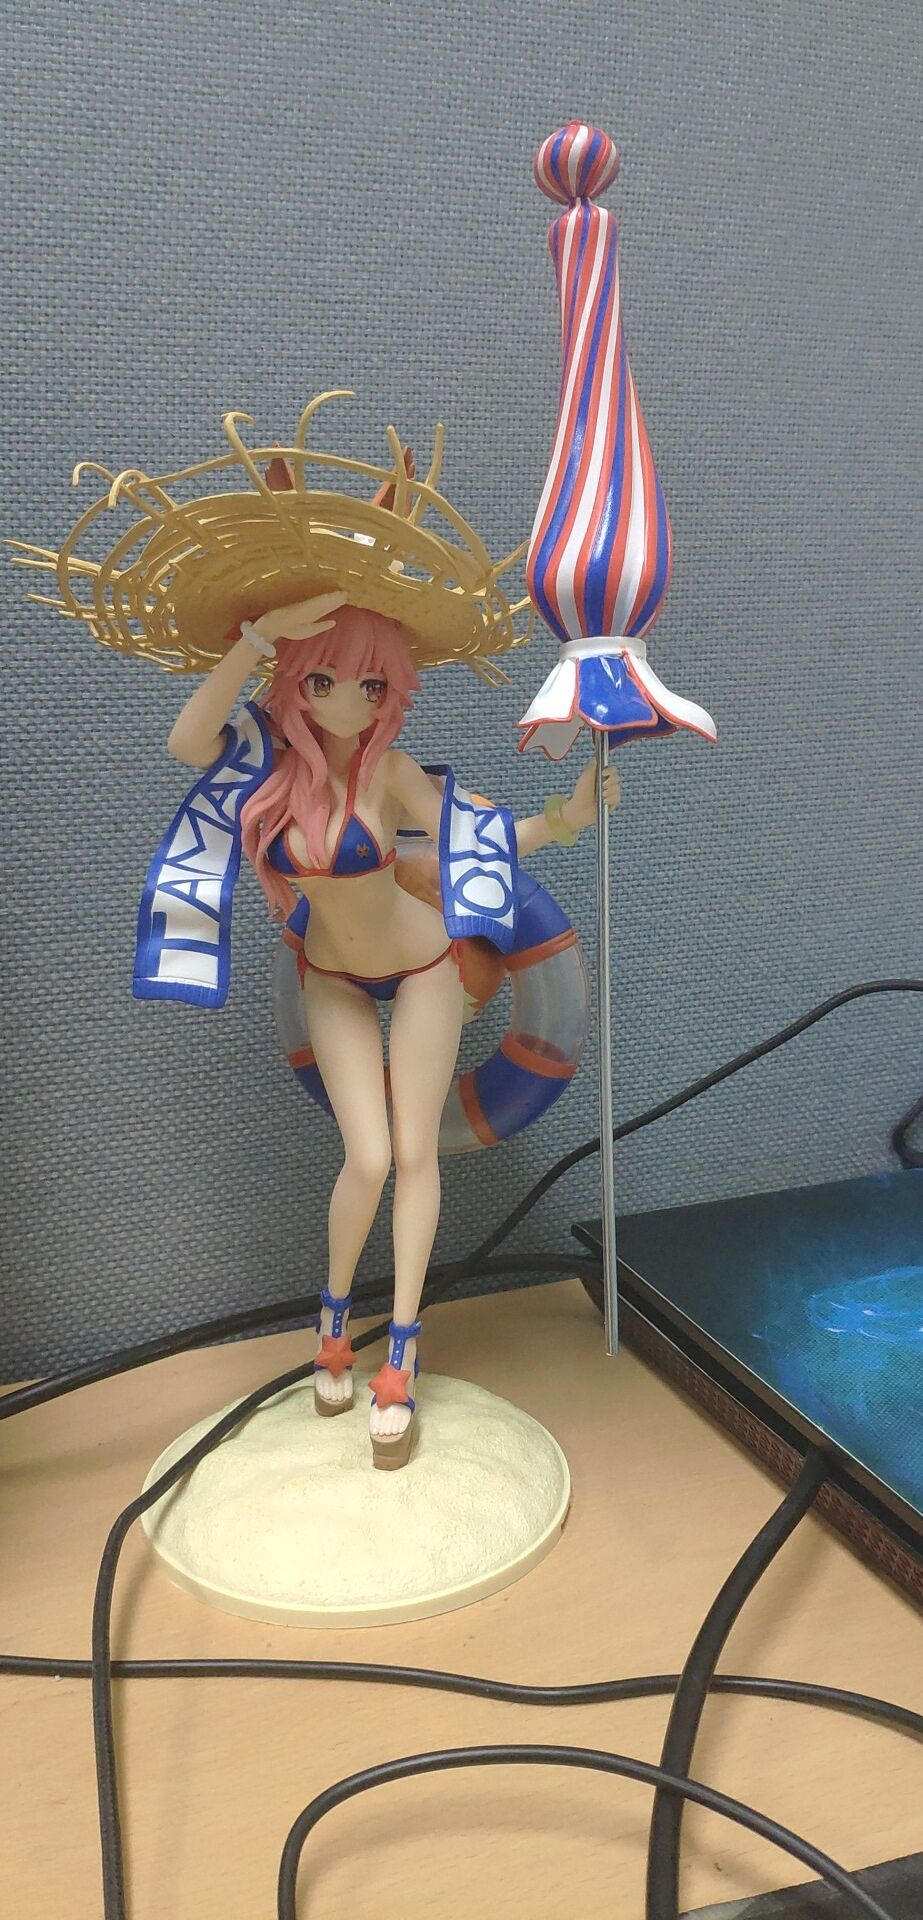 Fate/EXTRA Tamamonomae Bathing Suit Action Figure Toys Anime Garage Kits Dolls-Garage Kit Dolls